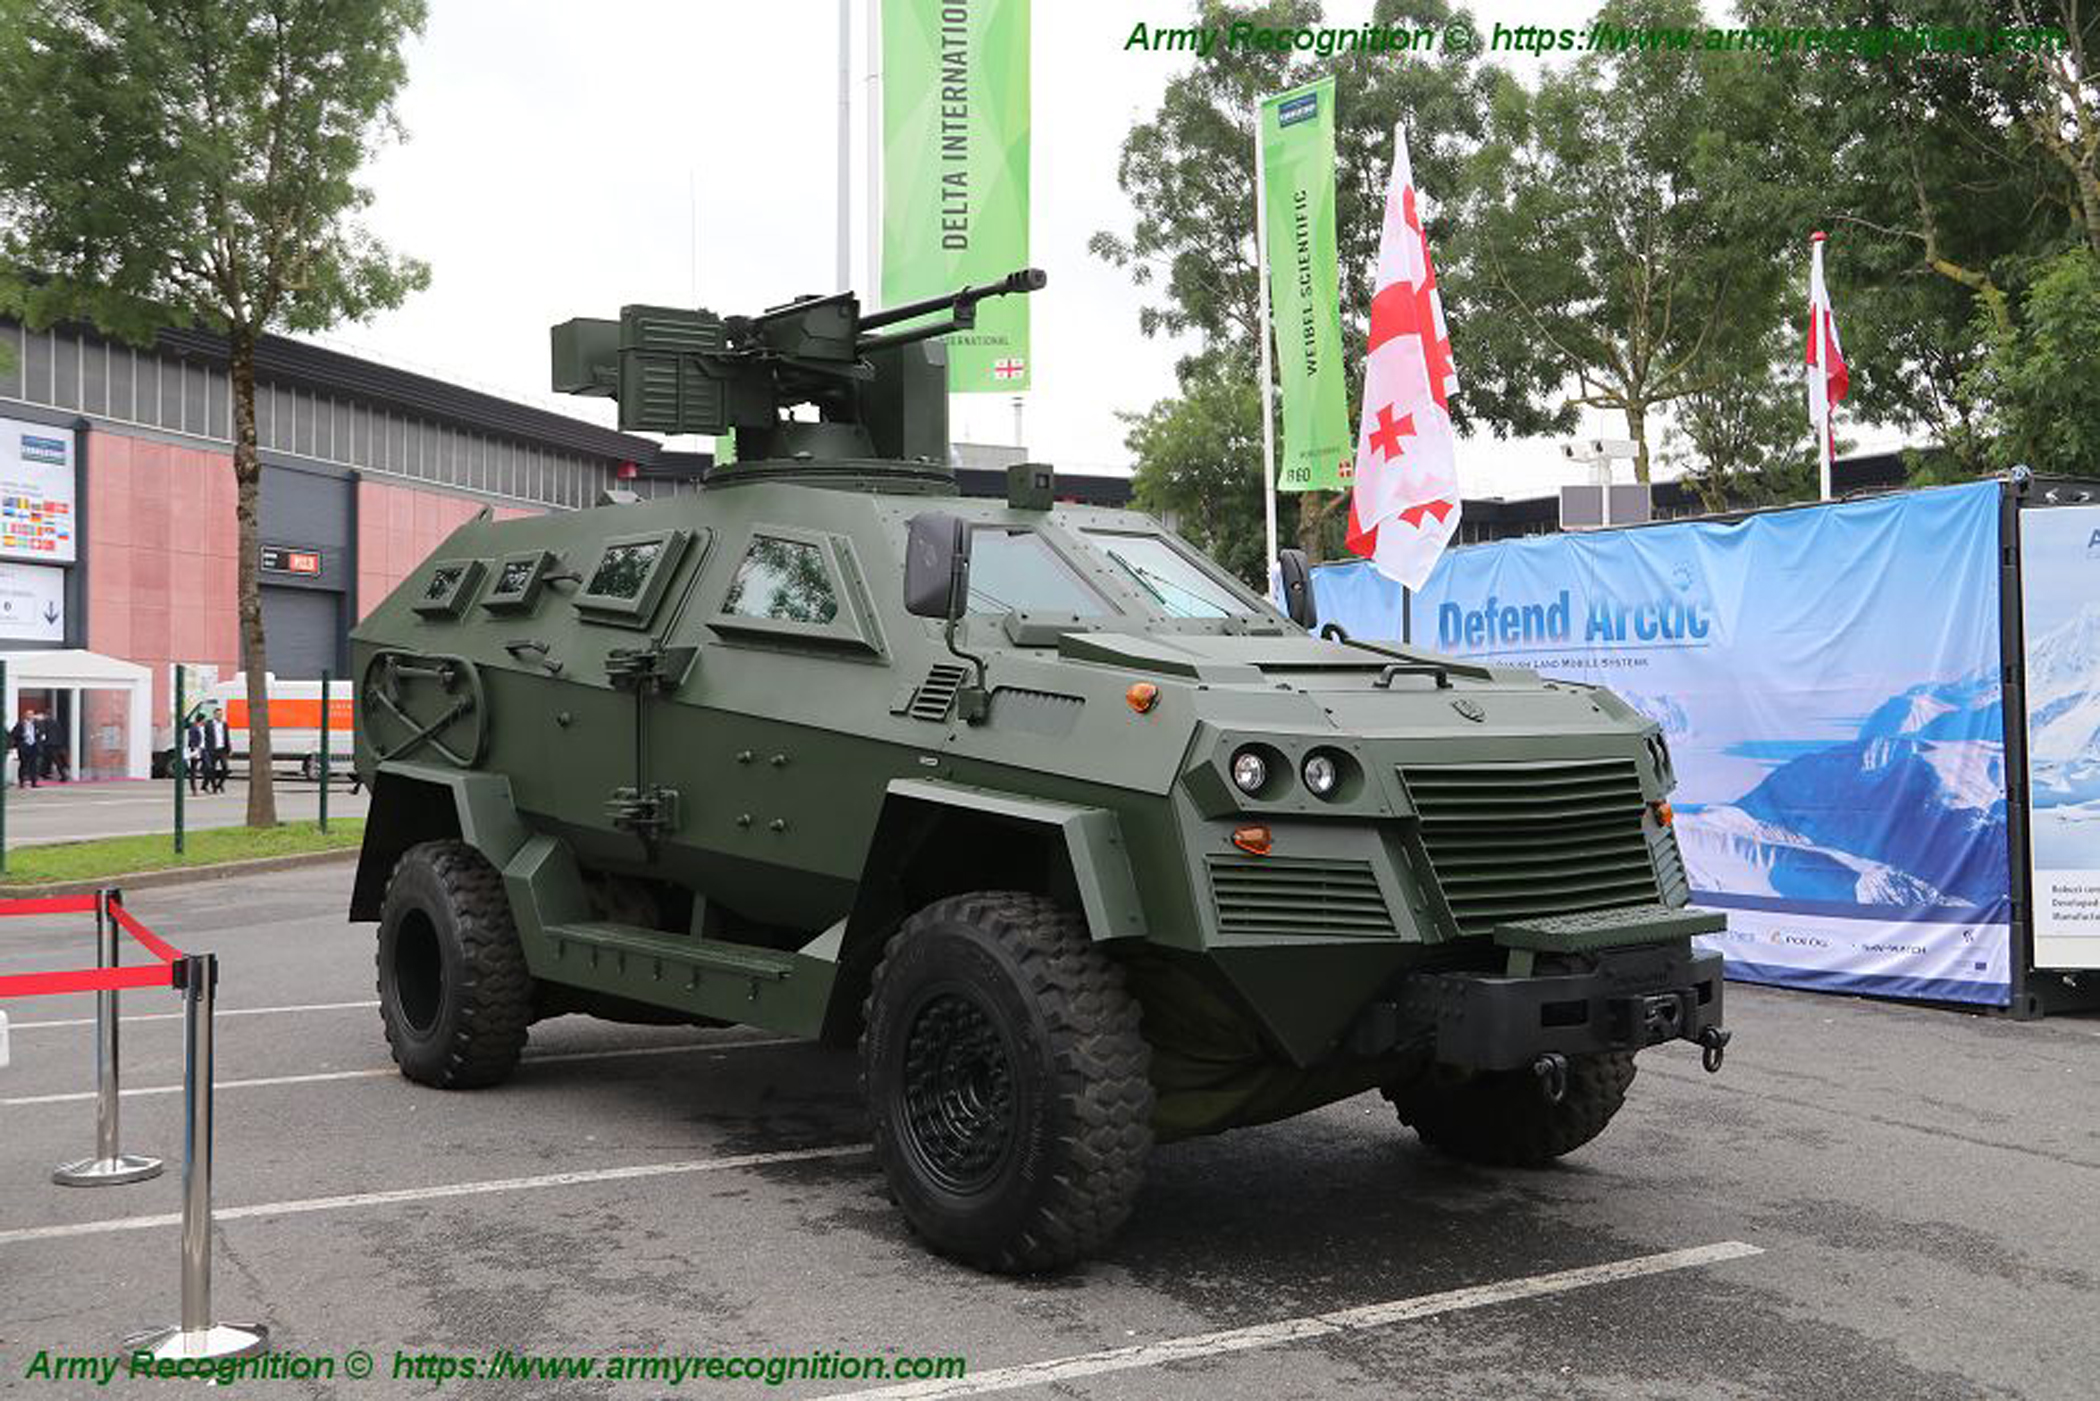 Georgia Μilitary: News and Modernisation - Page 4 Georgian_defense_industry_presents_didgori_4x4_armored_at_eurosatory_2018_925_001-jpg